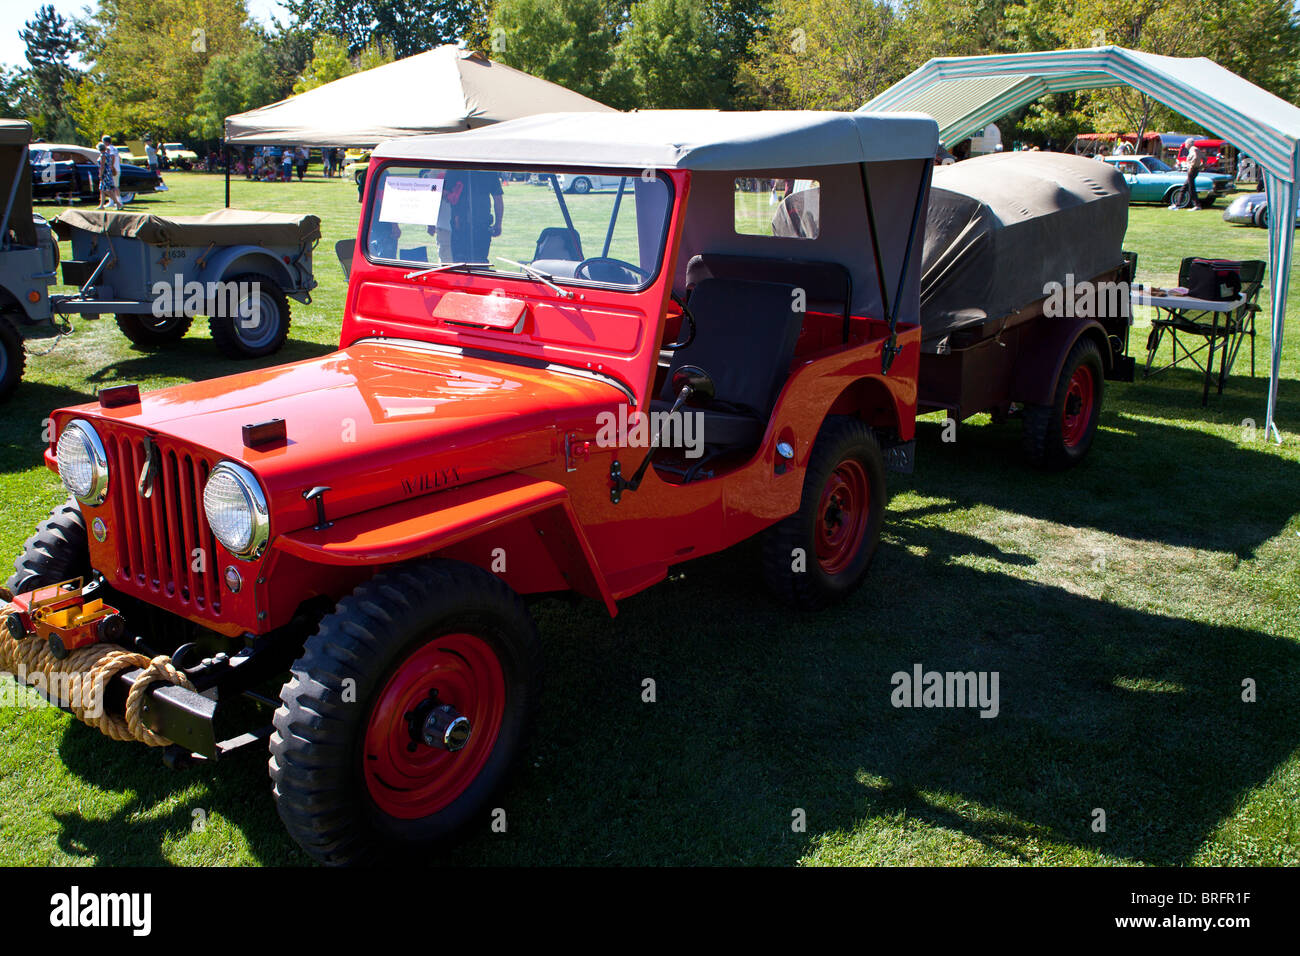 Old Willys Jeep Stock Photos Images Page 3 1950 Cj 3a For Sale A 1952 Cj3a At The 2010 Ironstone Concours Delegance Image